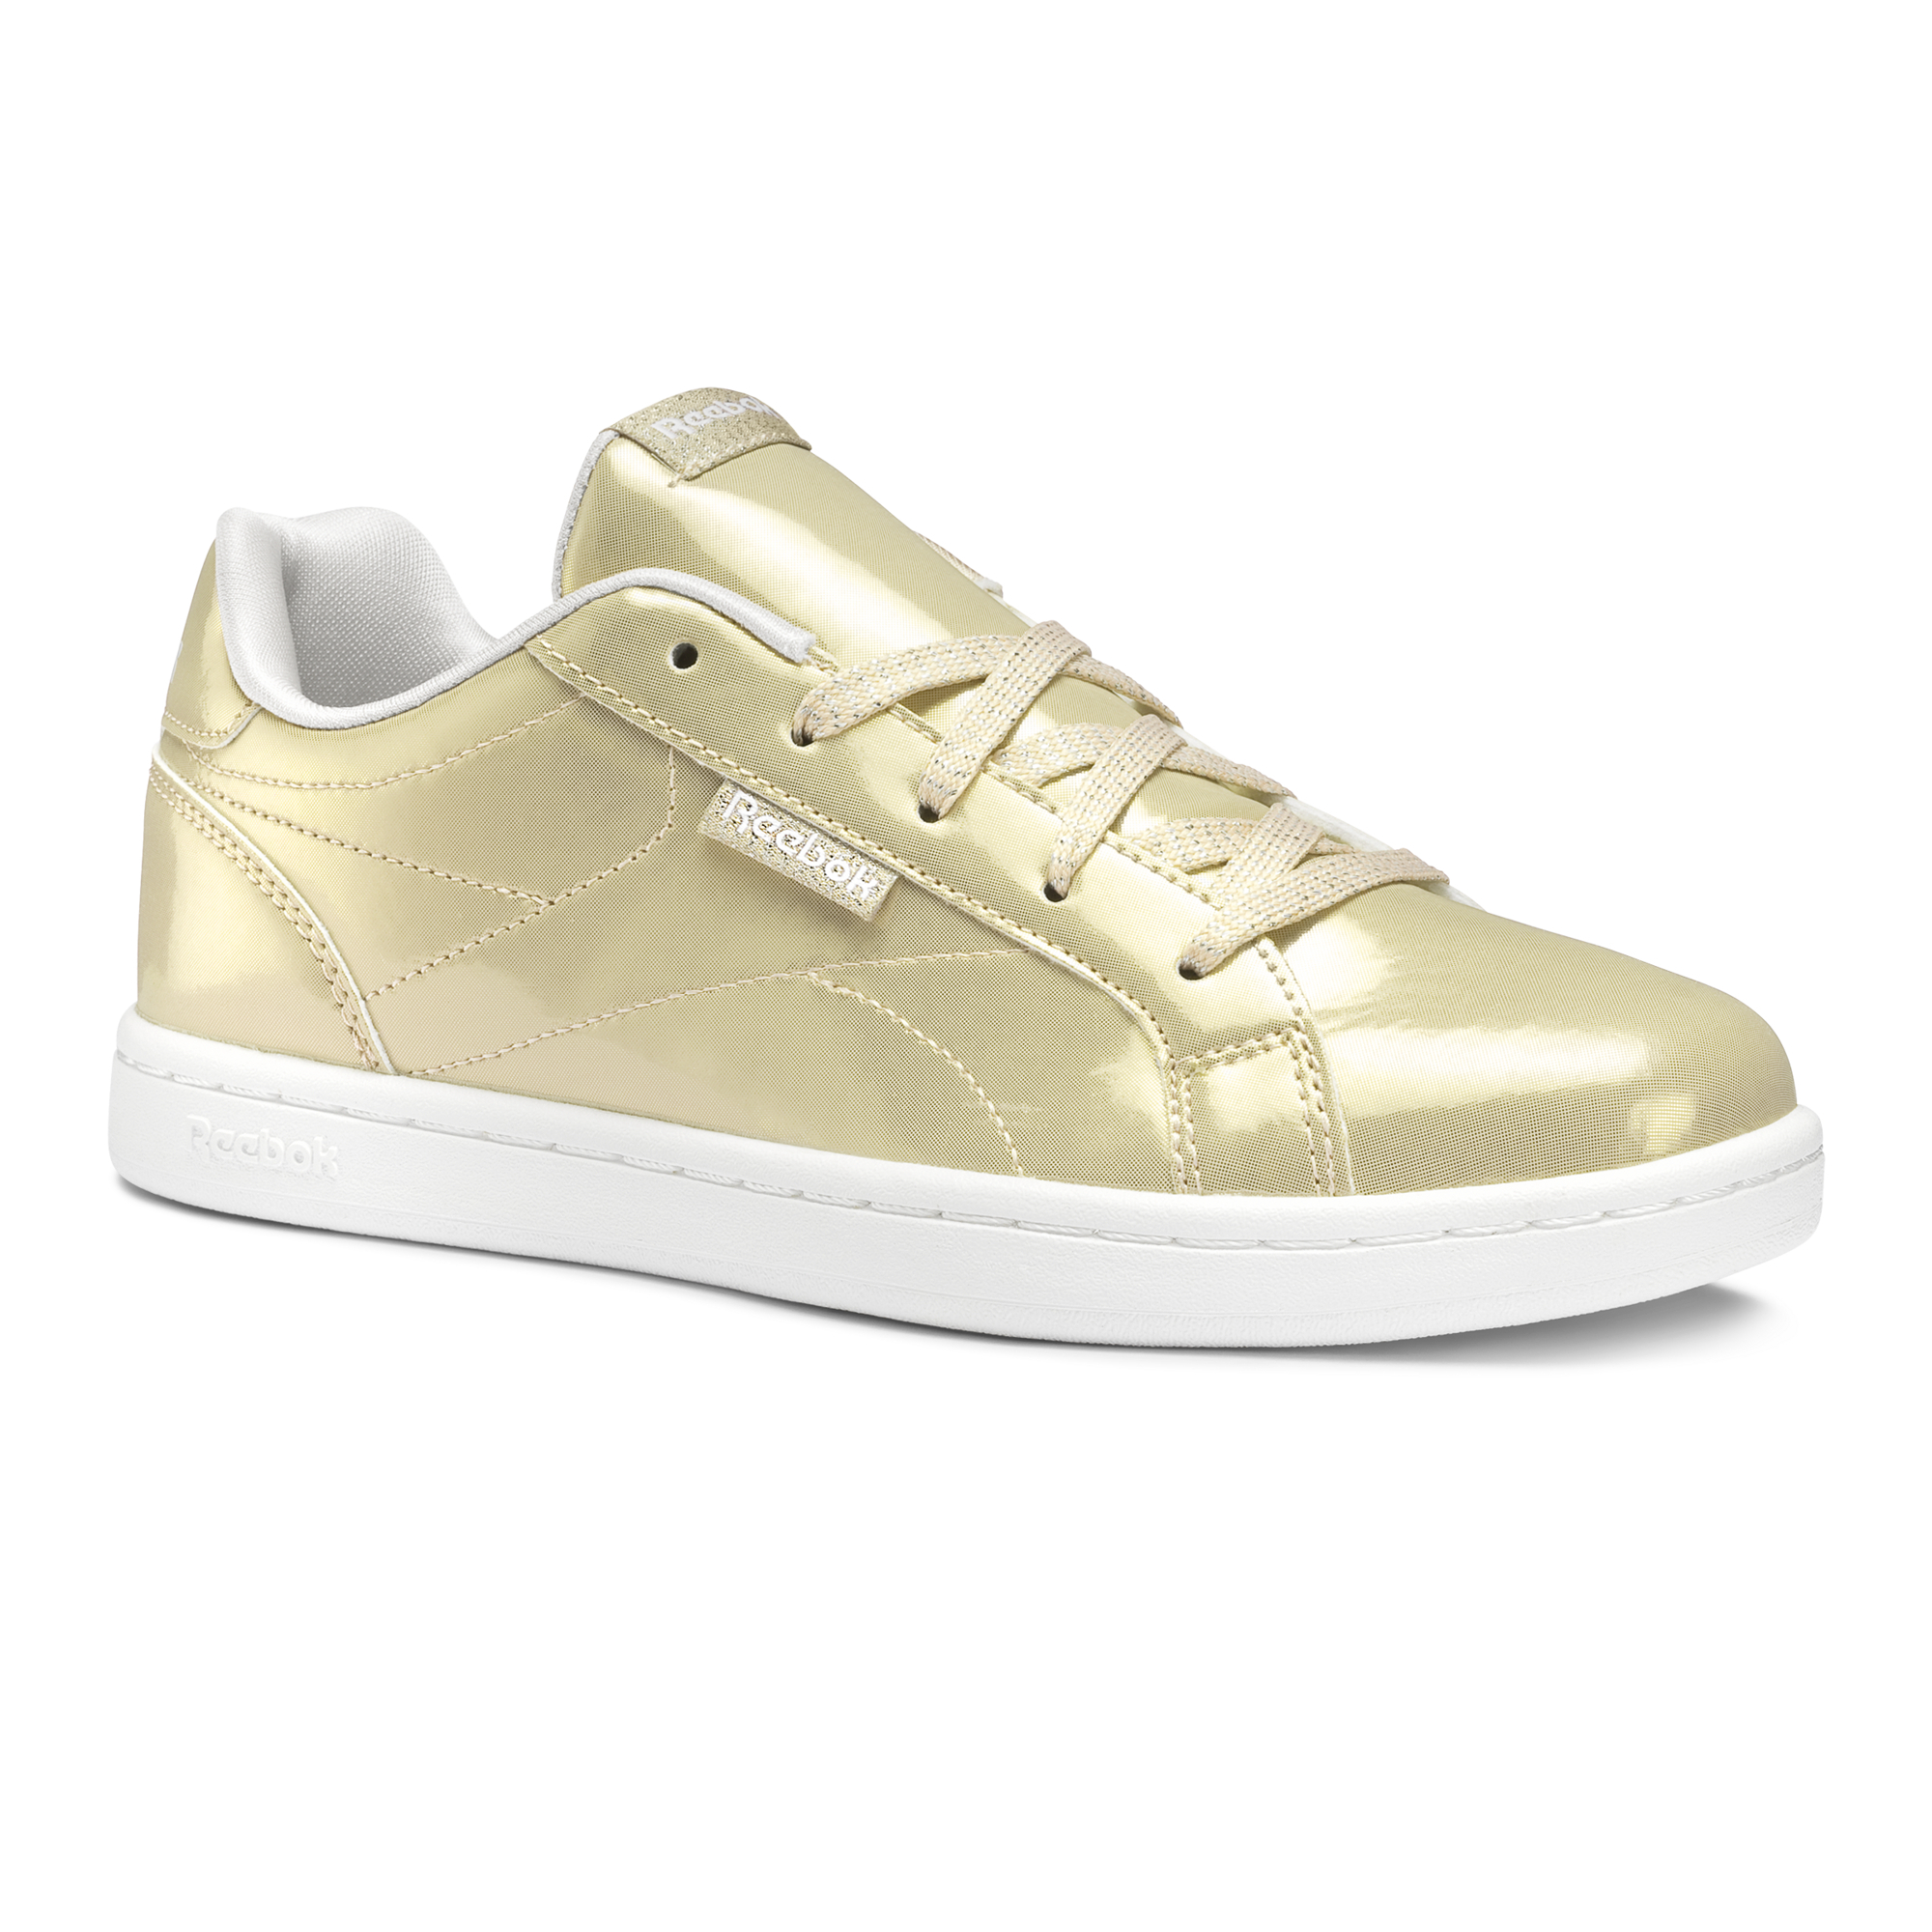 REEBOK ROYAL COMPLE NEW METALLIC-GOLD SP